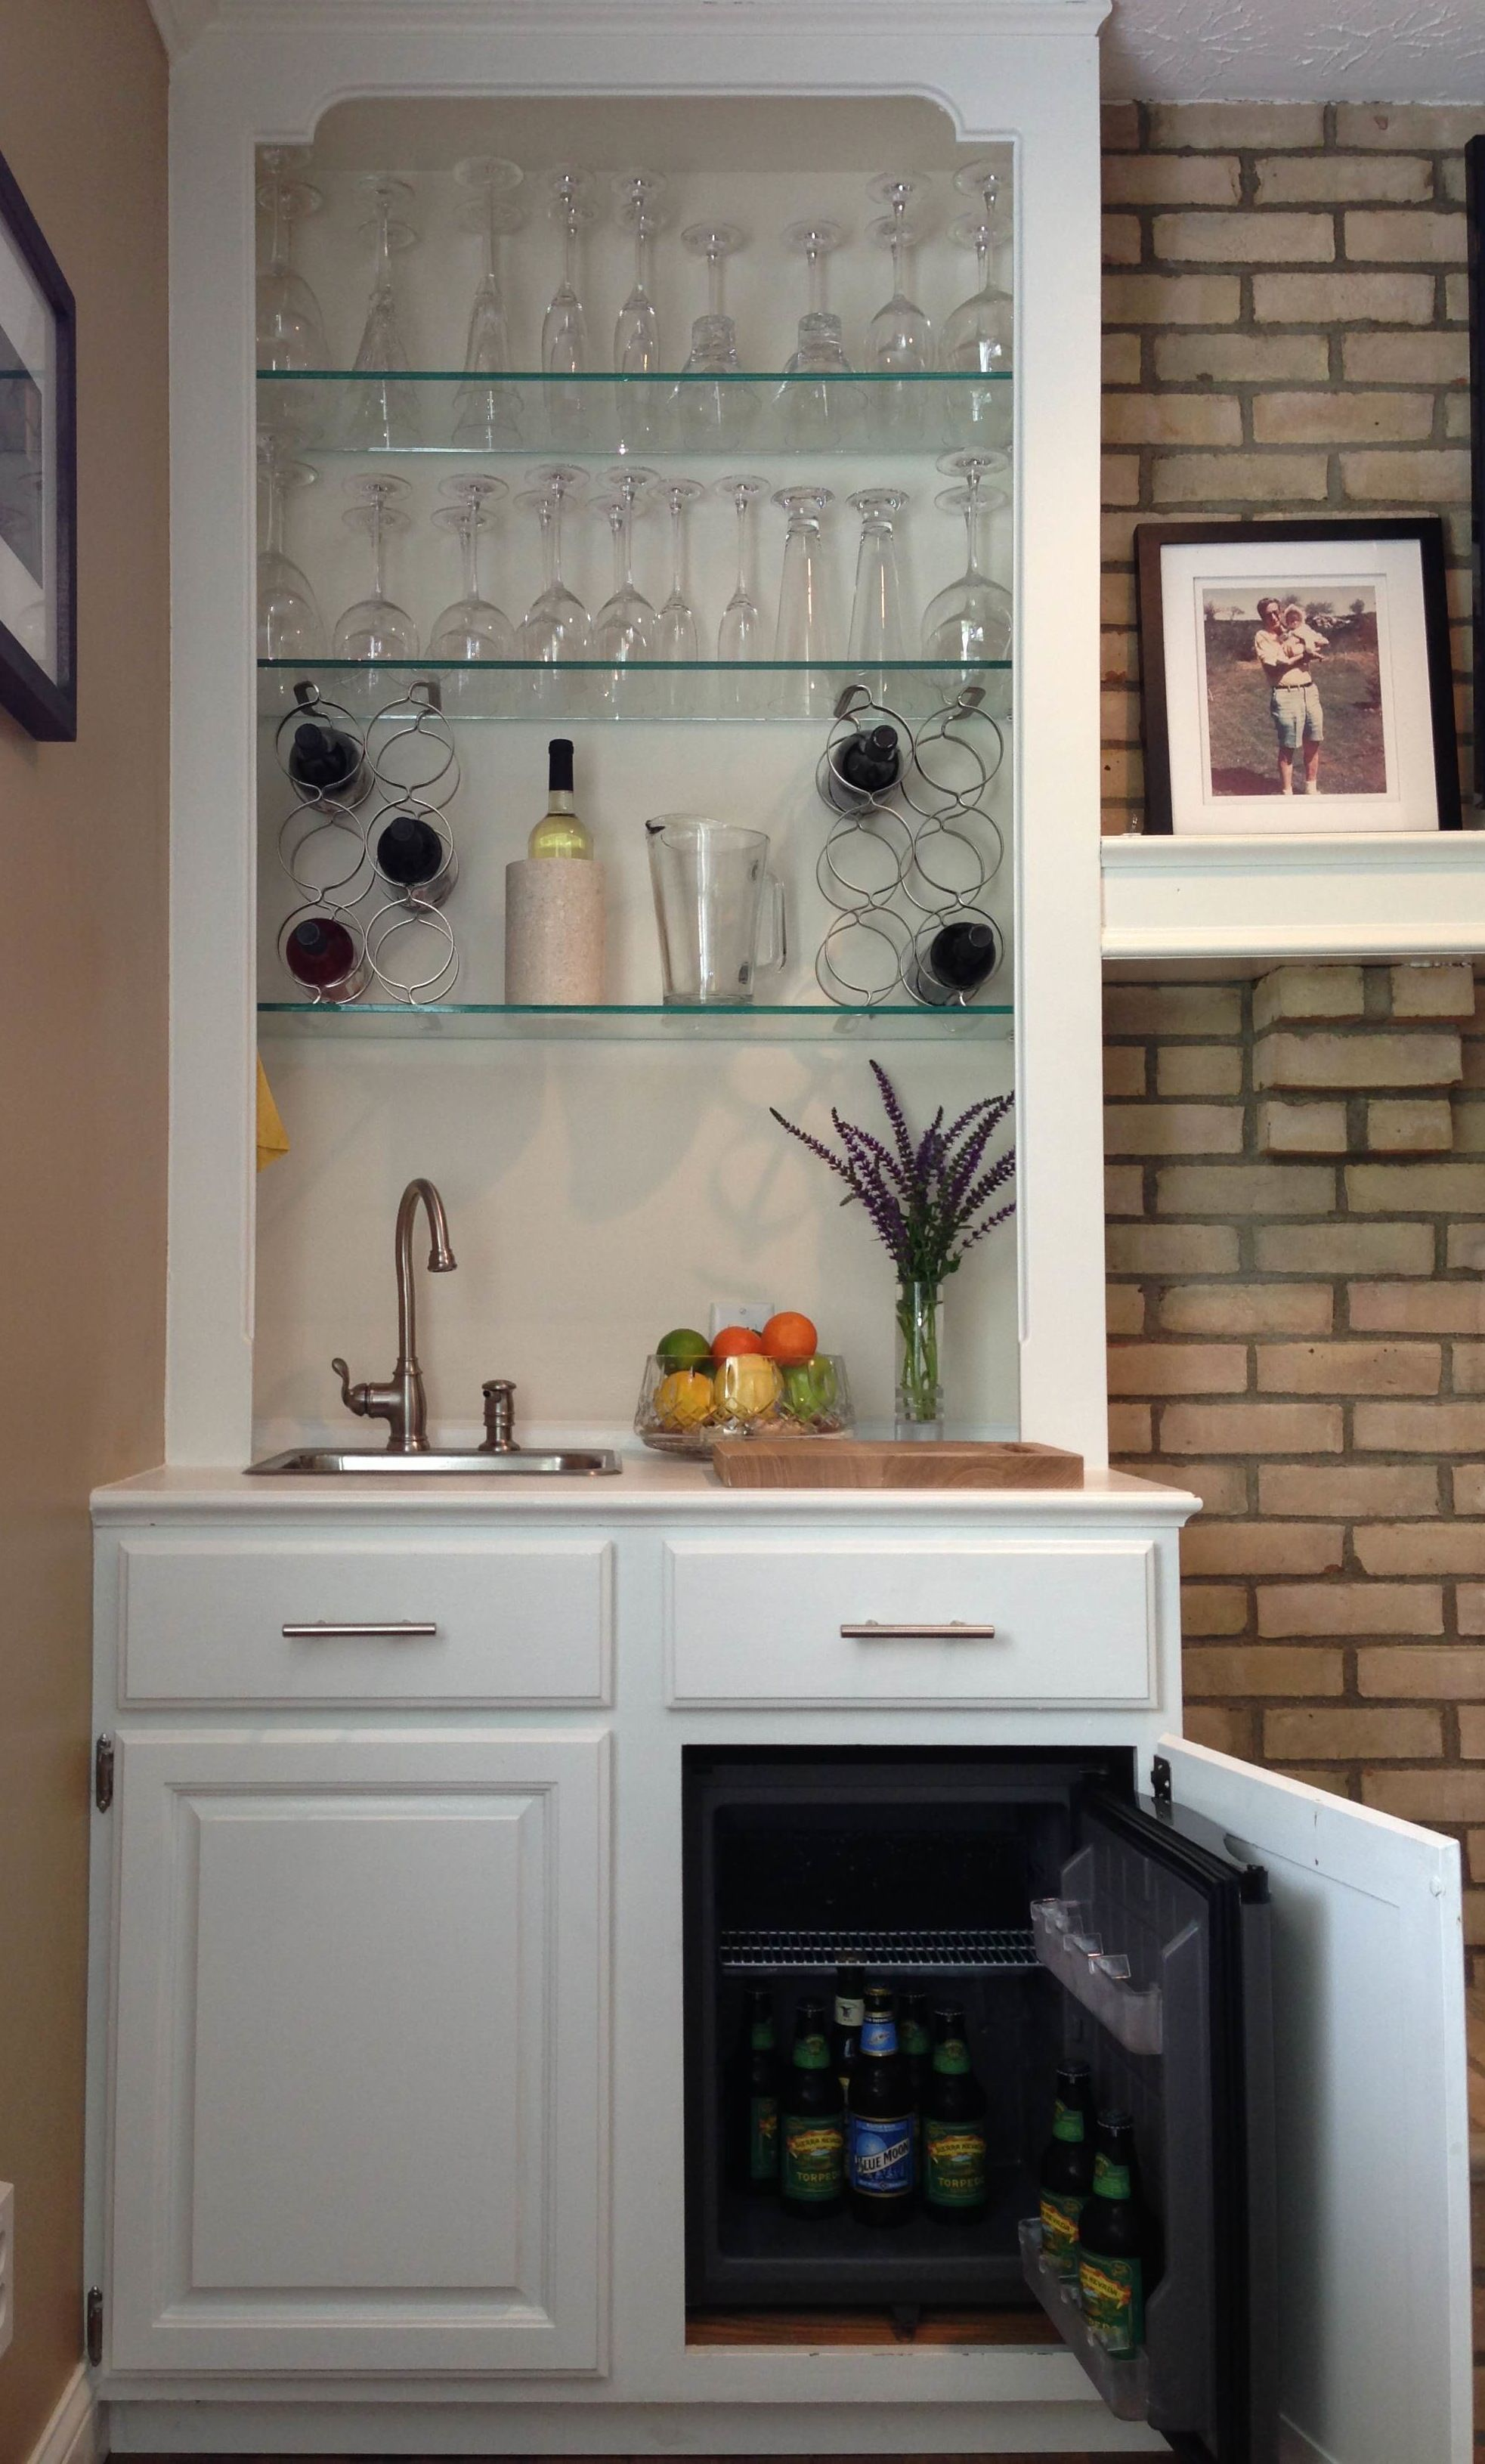 Delicieux Built In Wet Bar   I Converted A Mirror Backed Book Shelf Into A Built In  Bar. The Key Pieces Are: Summit Appliance 1.06 Ft^3 Mini Refrigerator*  (Home ...